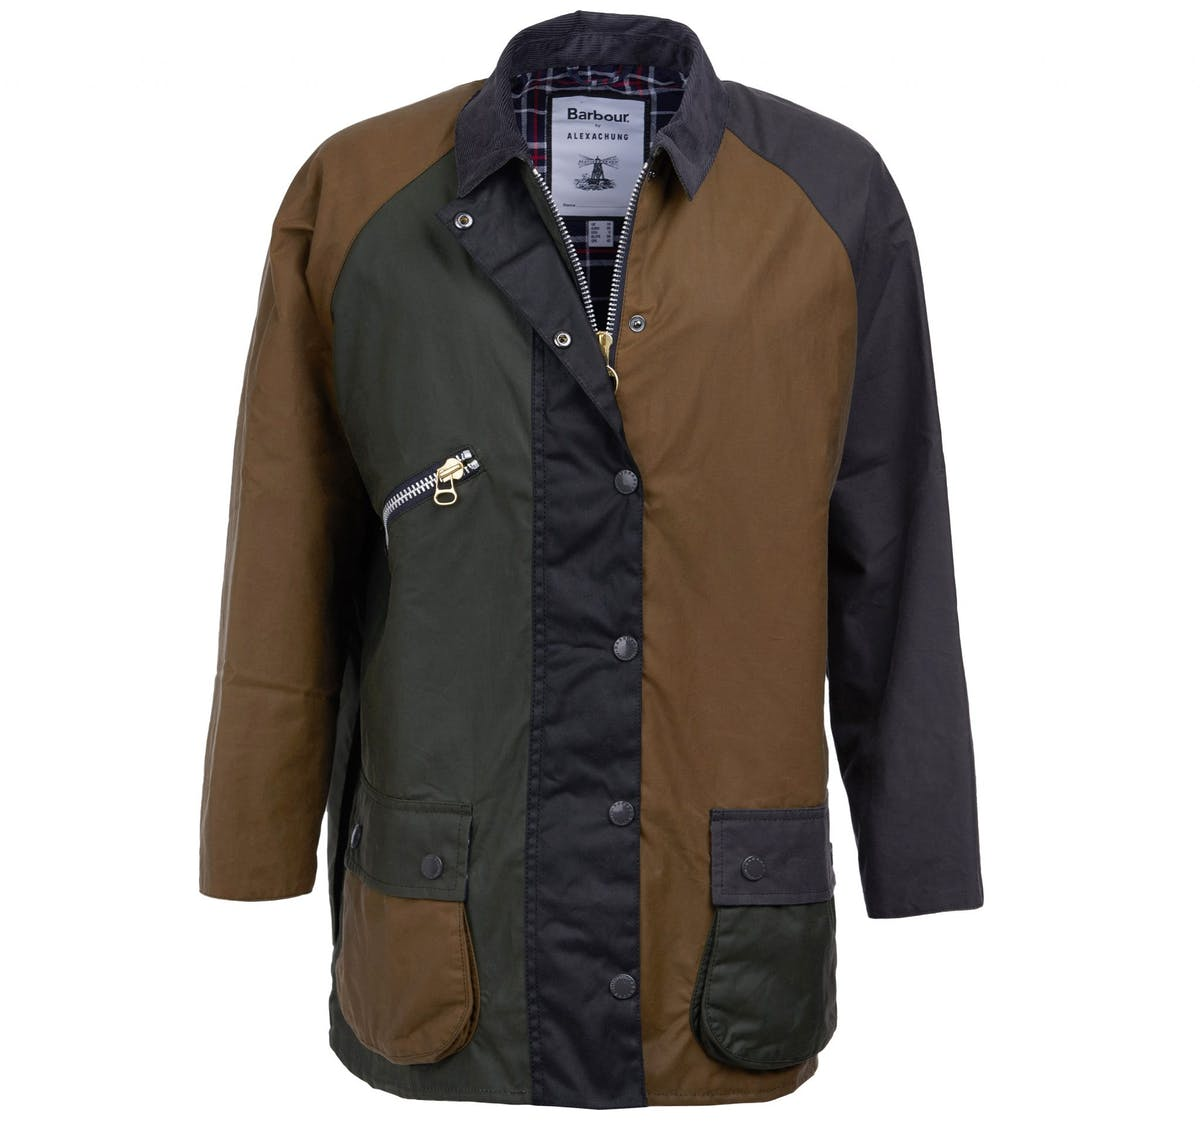 Alexa Chung X Barbour Cool Jackets For Festivals This Summer